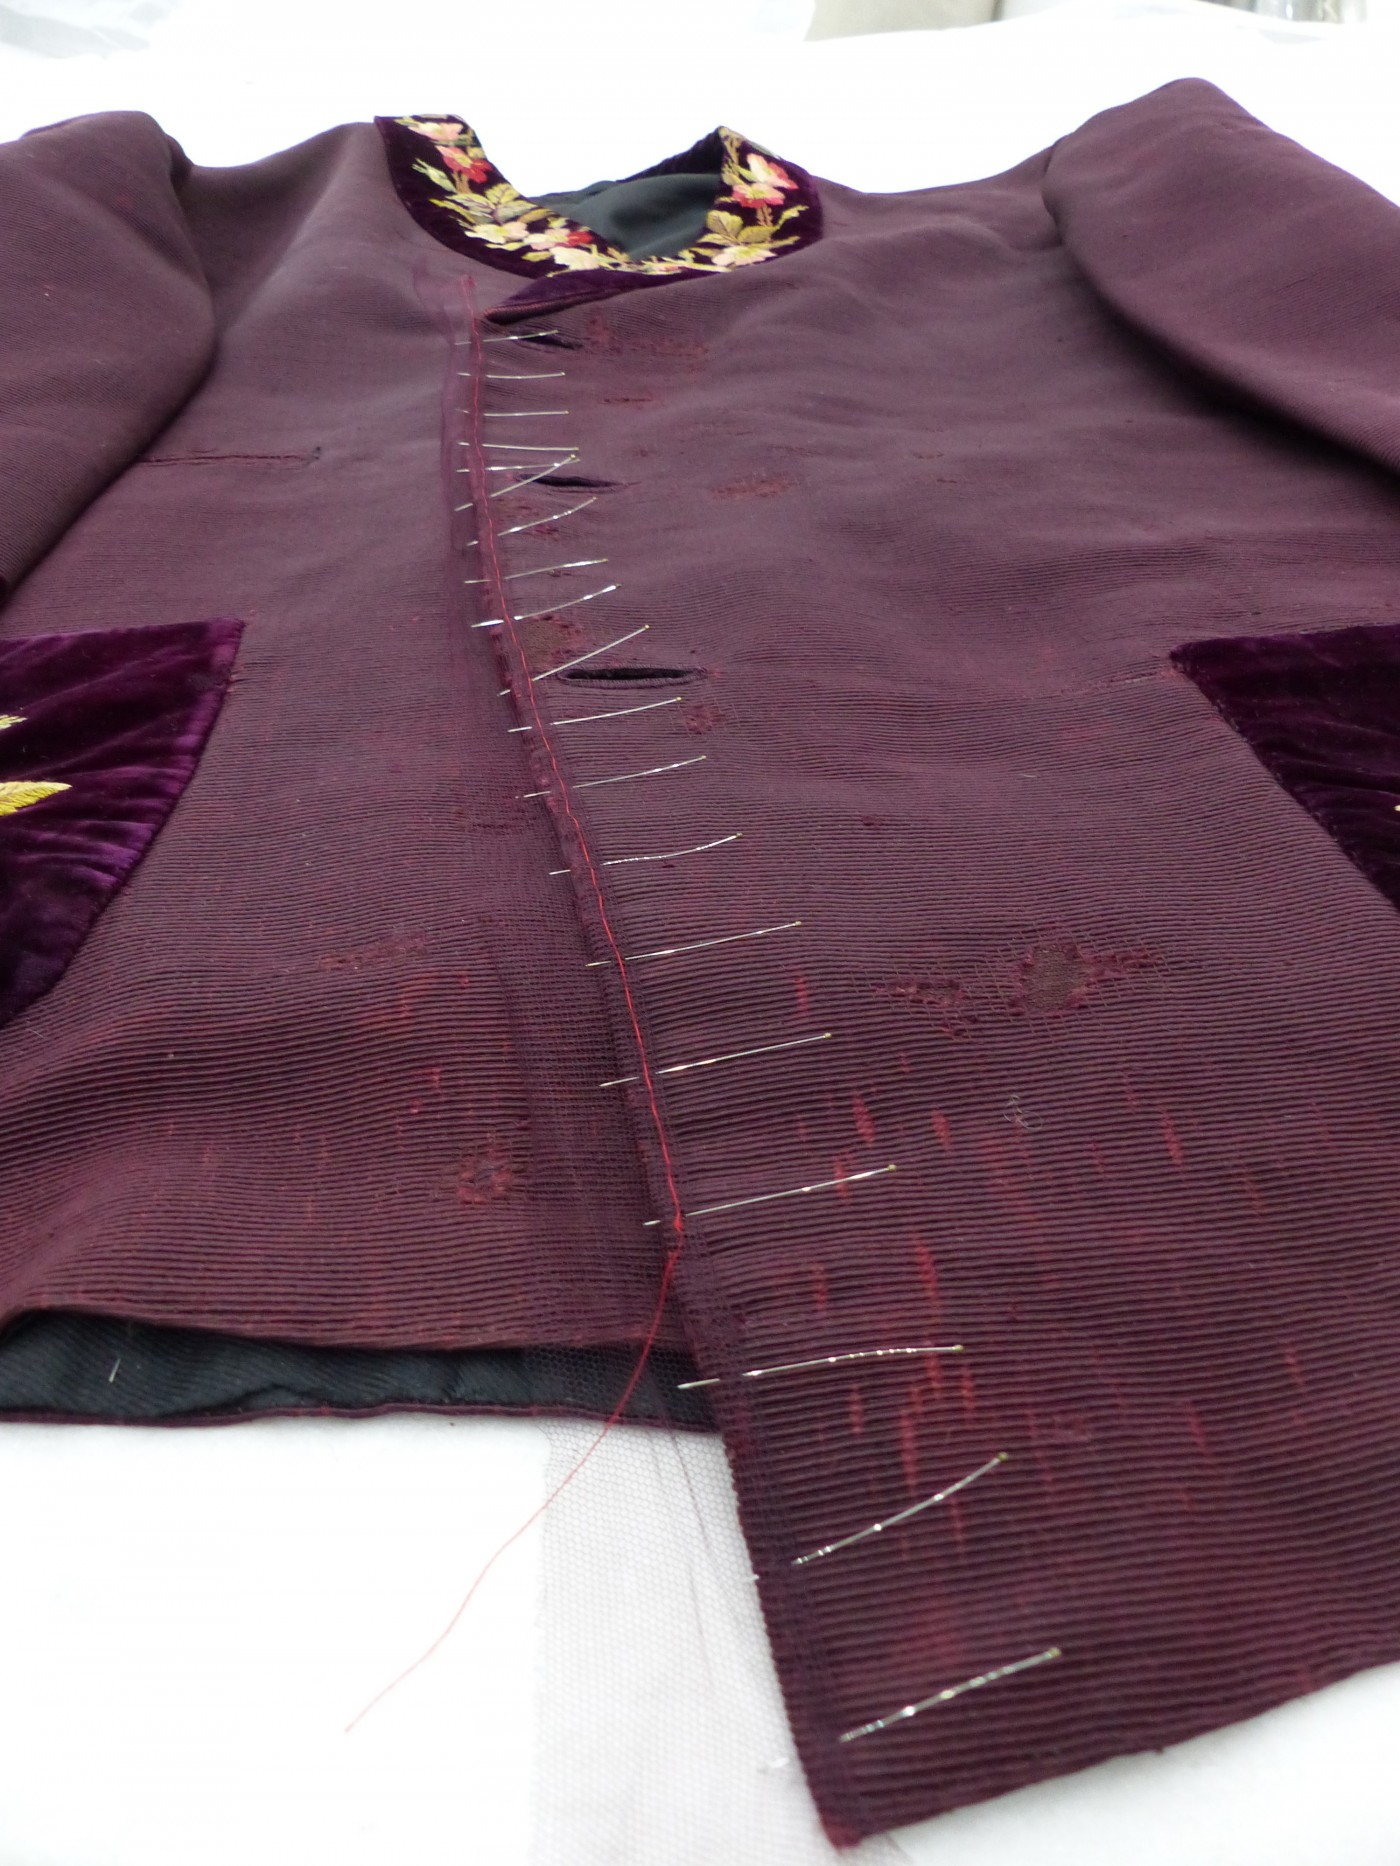 Edging the jacket front opening with dyed nylon net © Zenzie Tinker Conservation